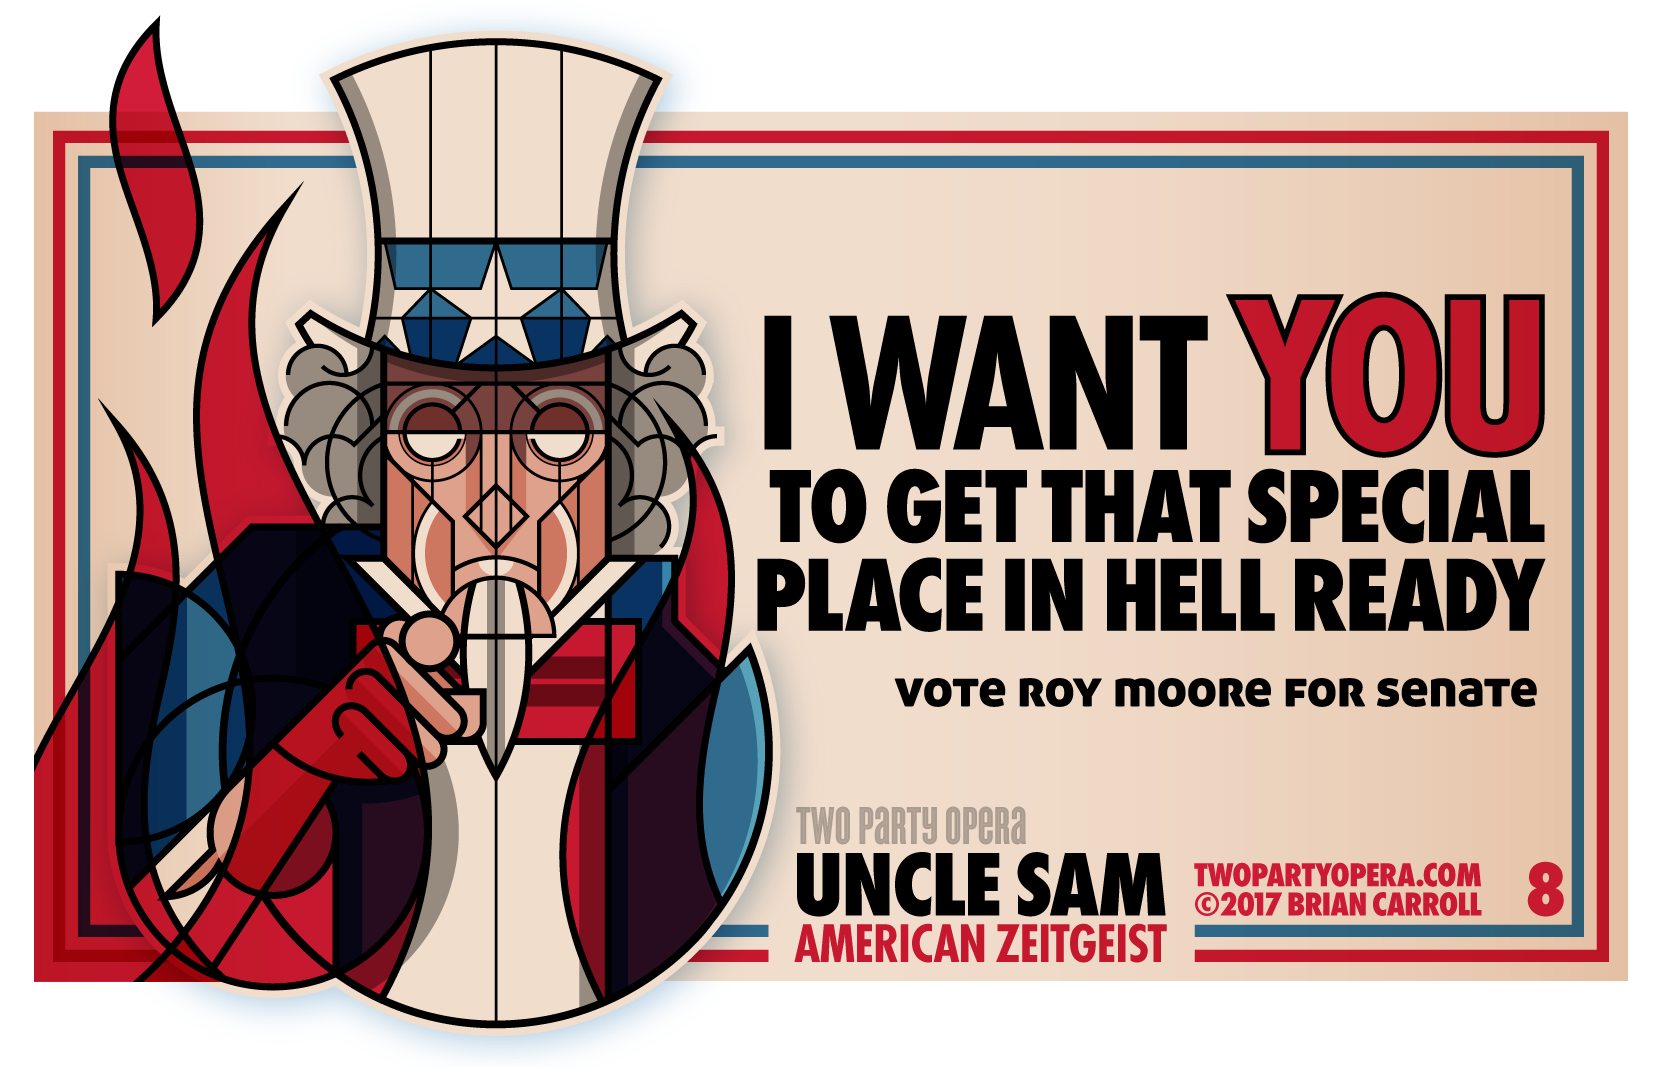 Uncle Sam: American Zeitgeist – 8